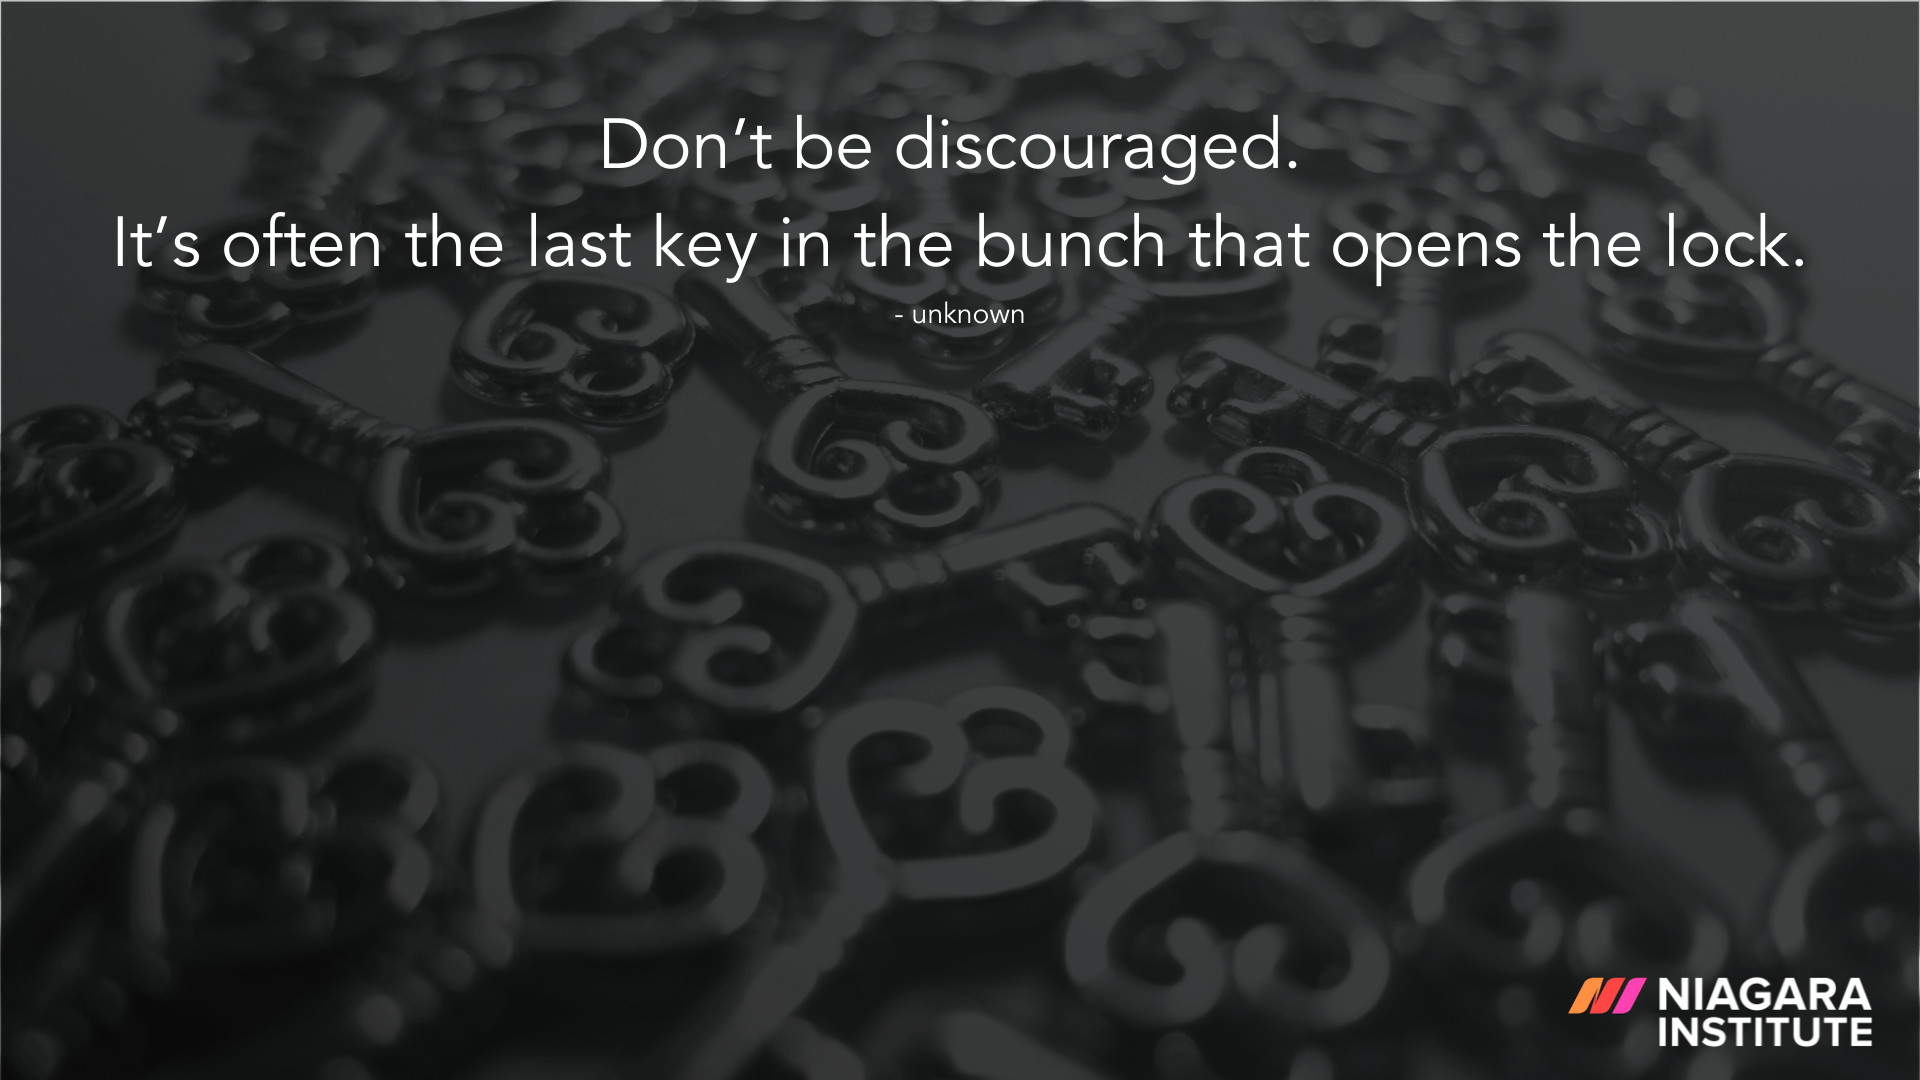 Don't be discouraged. It's often the last key in the bunch that opens the lock. - Unknown